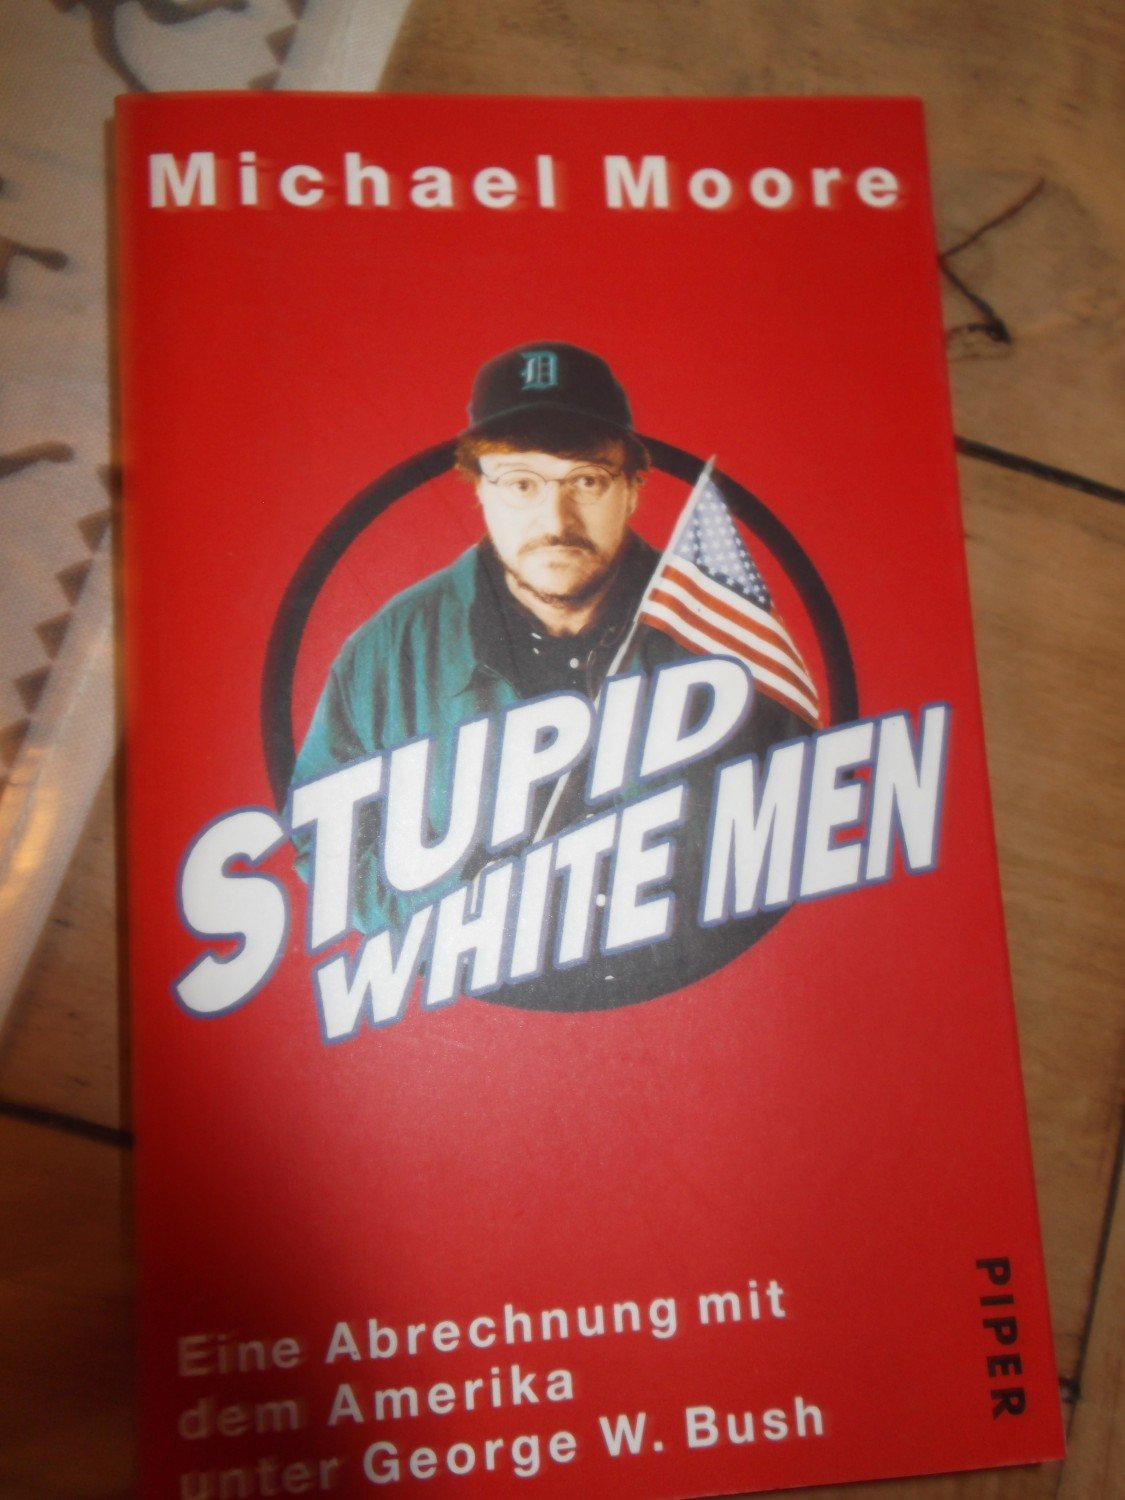 michael moores stupid white men essay Stupid white men and other sorry excuses for the state of the nation is a book by michael moore published in 2001 although the publishers were convinced it would be rejected by the american reading public after the september 11 attacks, it spent 50 consecutive weeks on new york times best seller list (eight weeks at #1) for hardcover nonfiction and is in its 43rd printing.